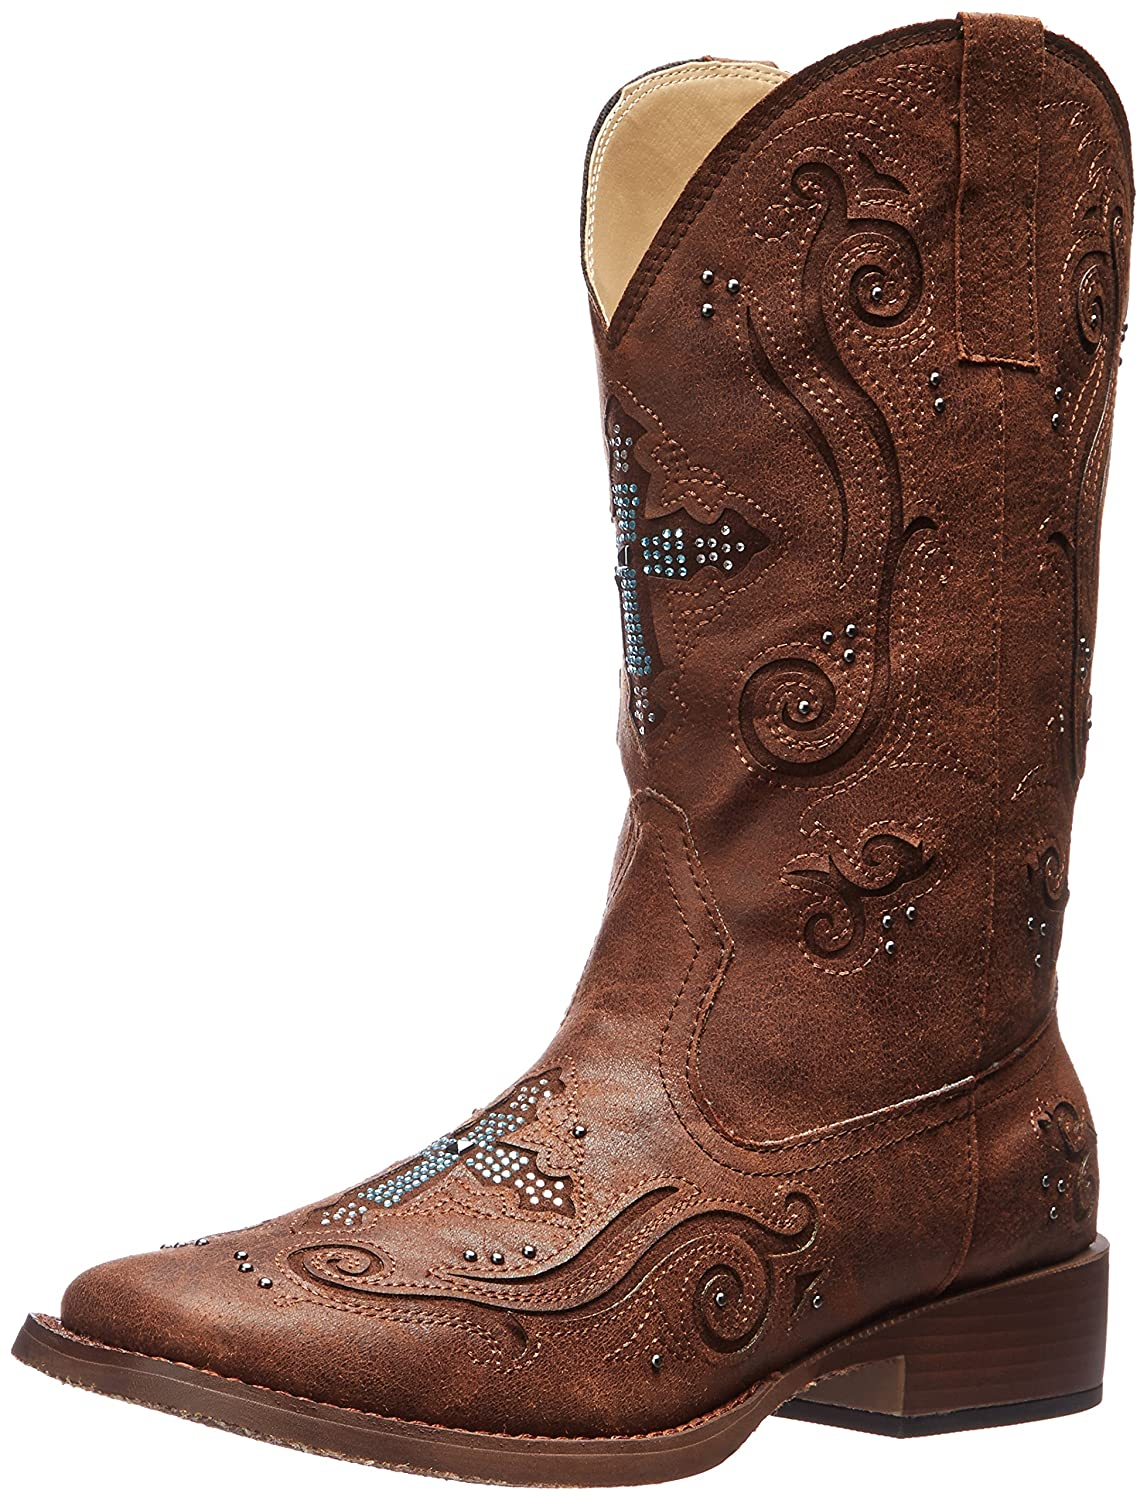 Roper Women's Crossed Out Western Boot B00JE8XX7Q 11 B(M) US|Brown